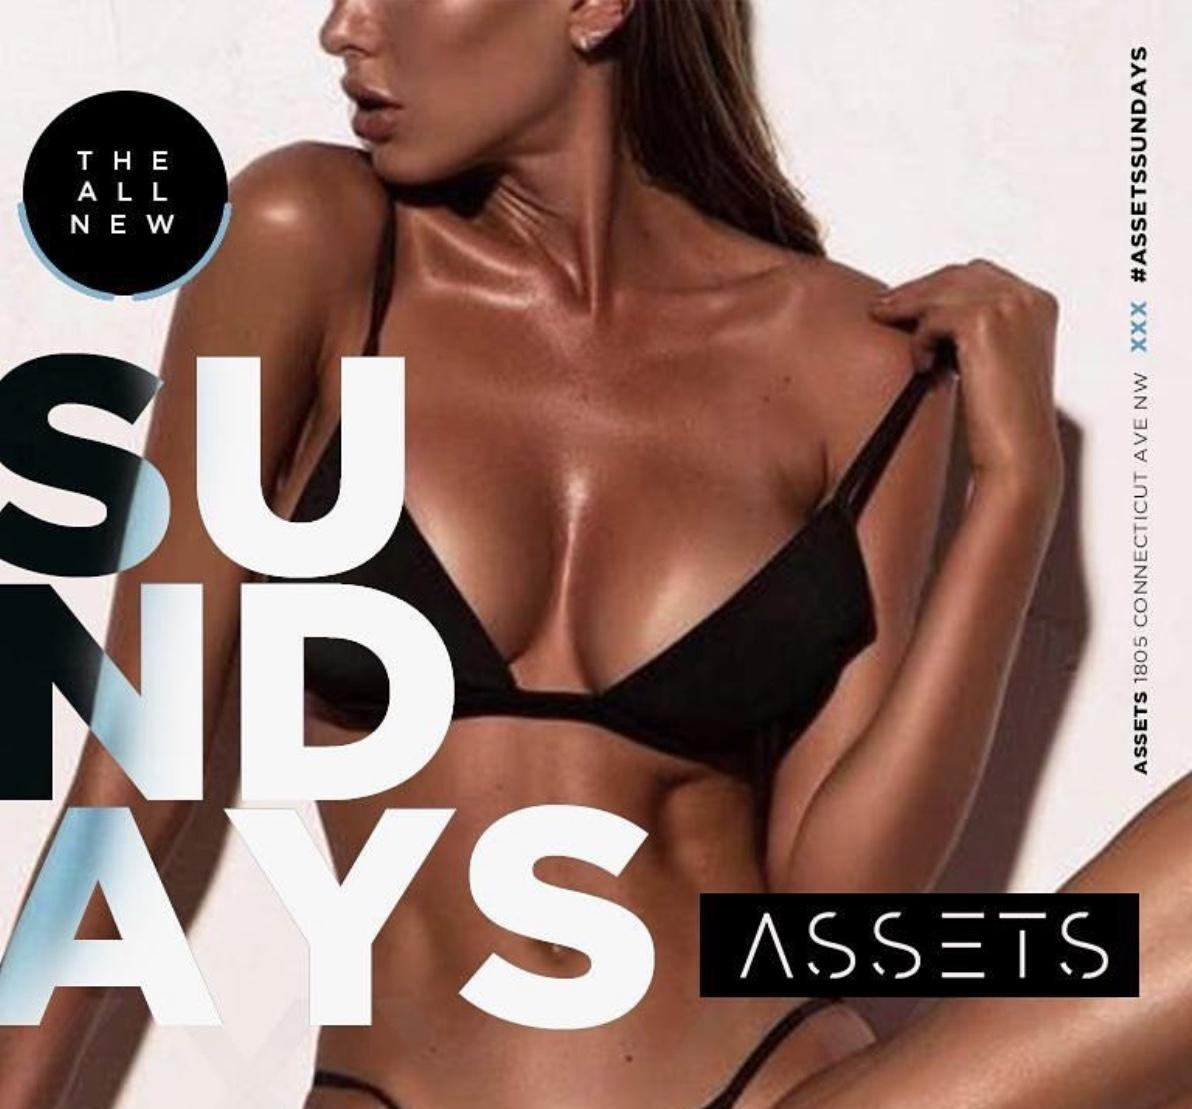 Assests Sunday's